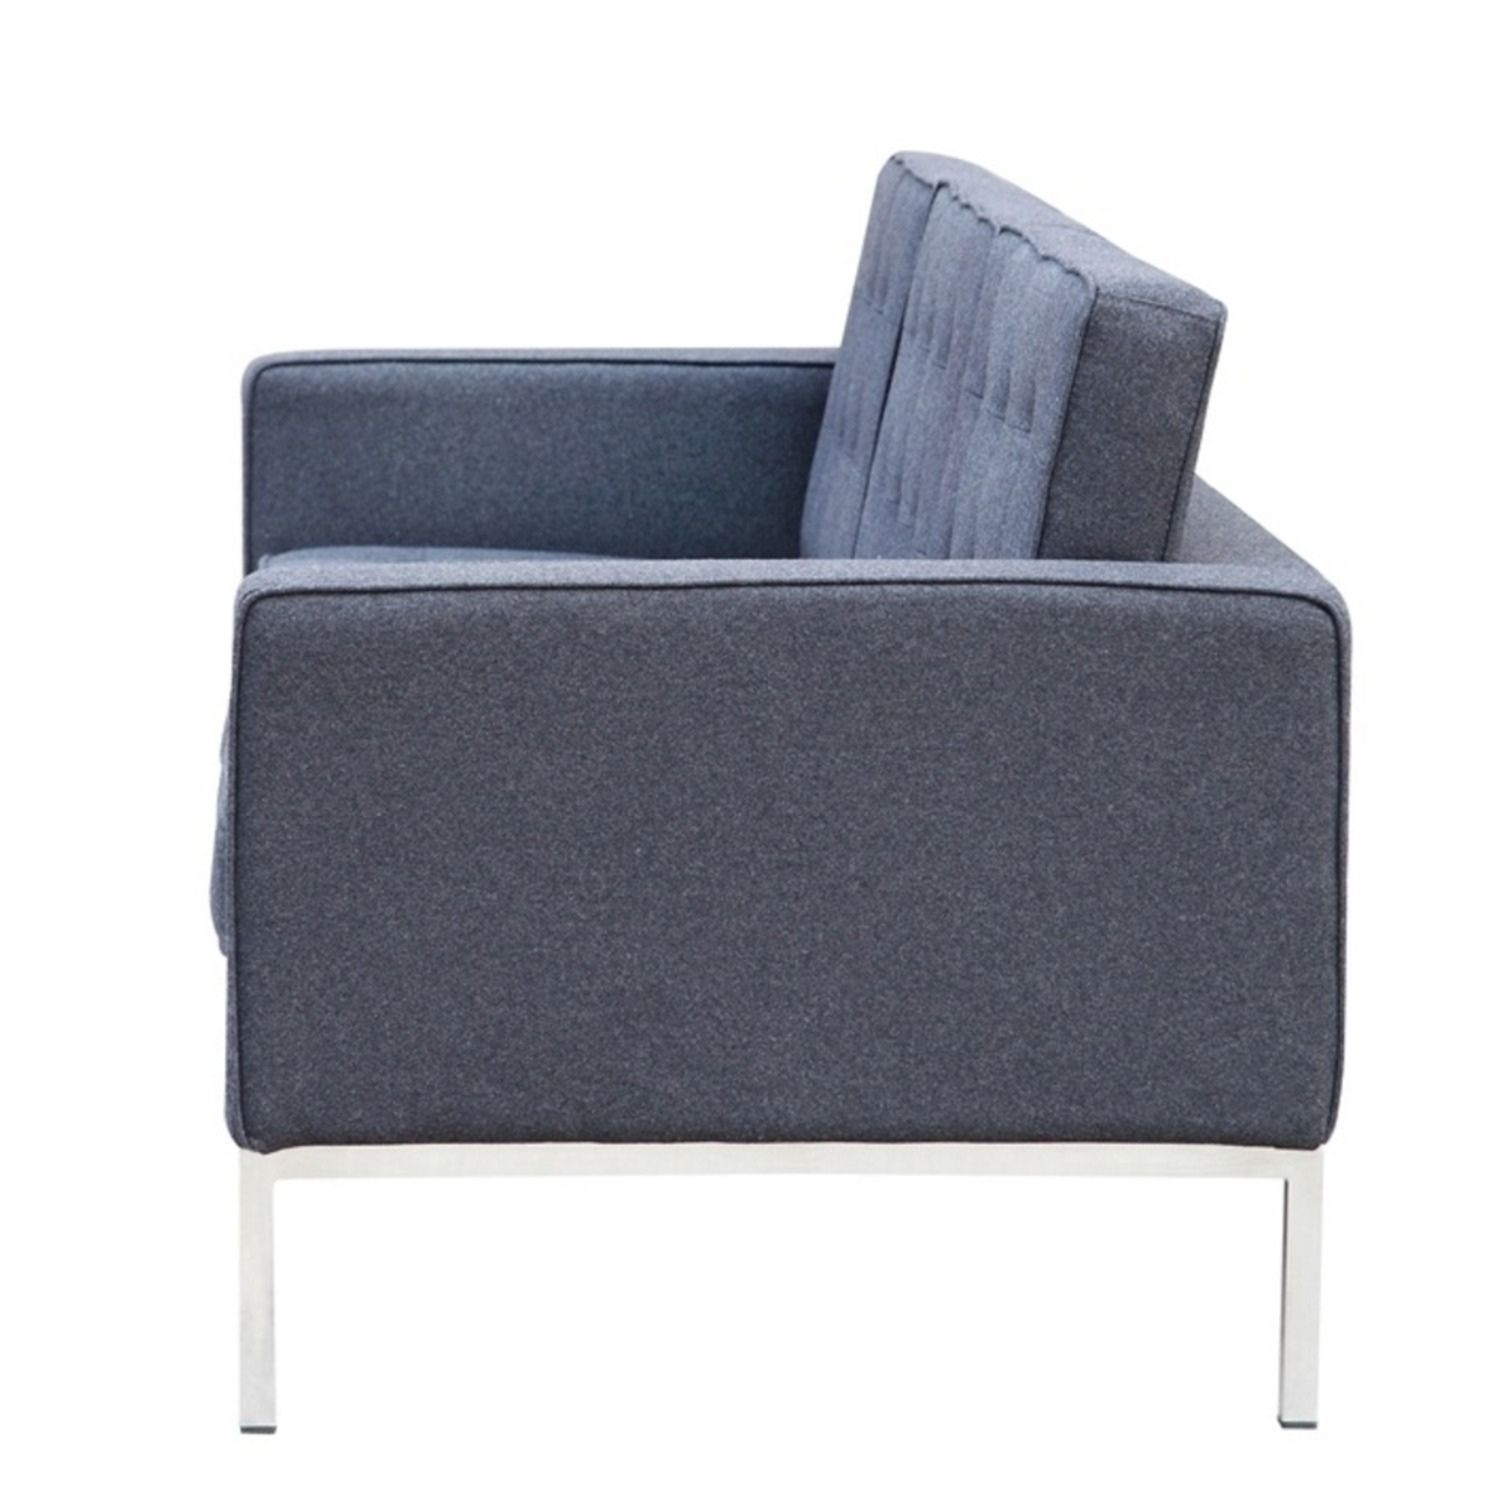 Contemporary Sofa In Gray Wool Fabric - image-3